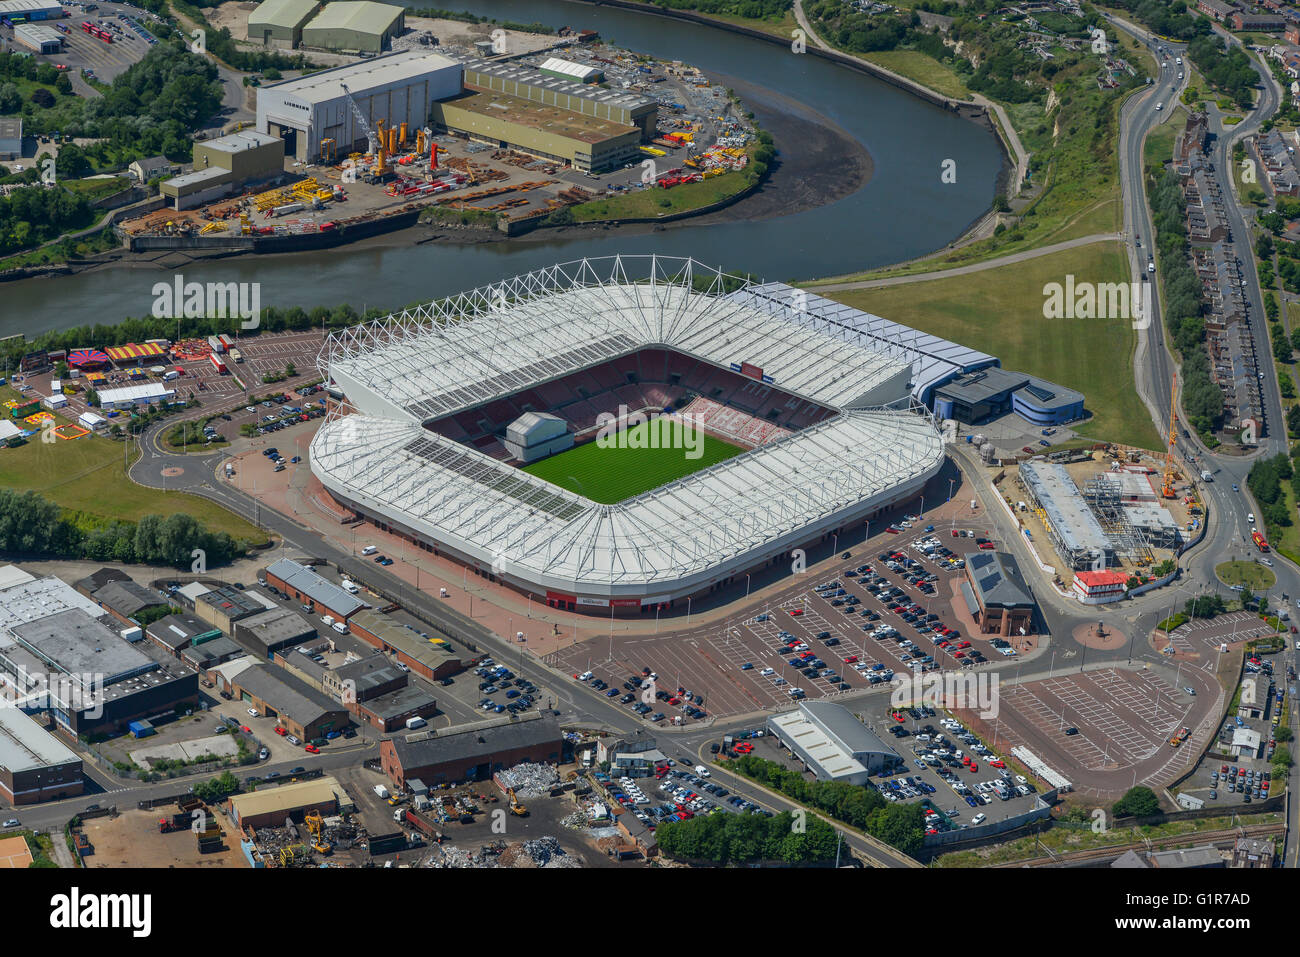 An aerial view of the Stadium of Light, home of Sunderland AFC - Stock Image